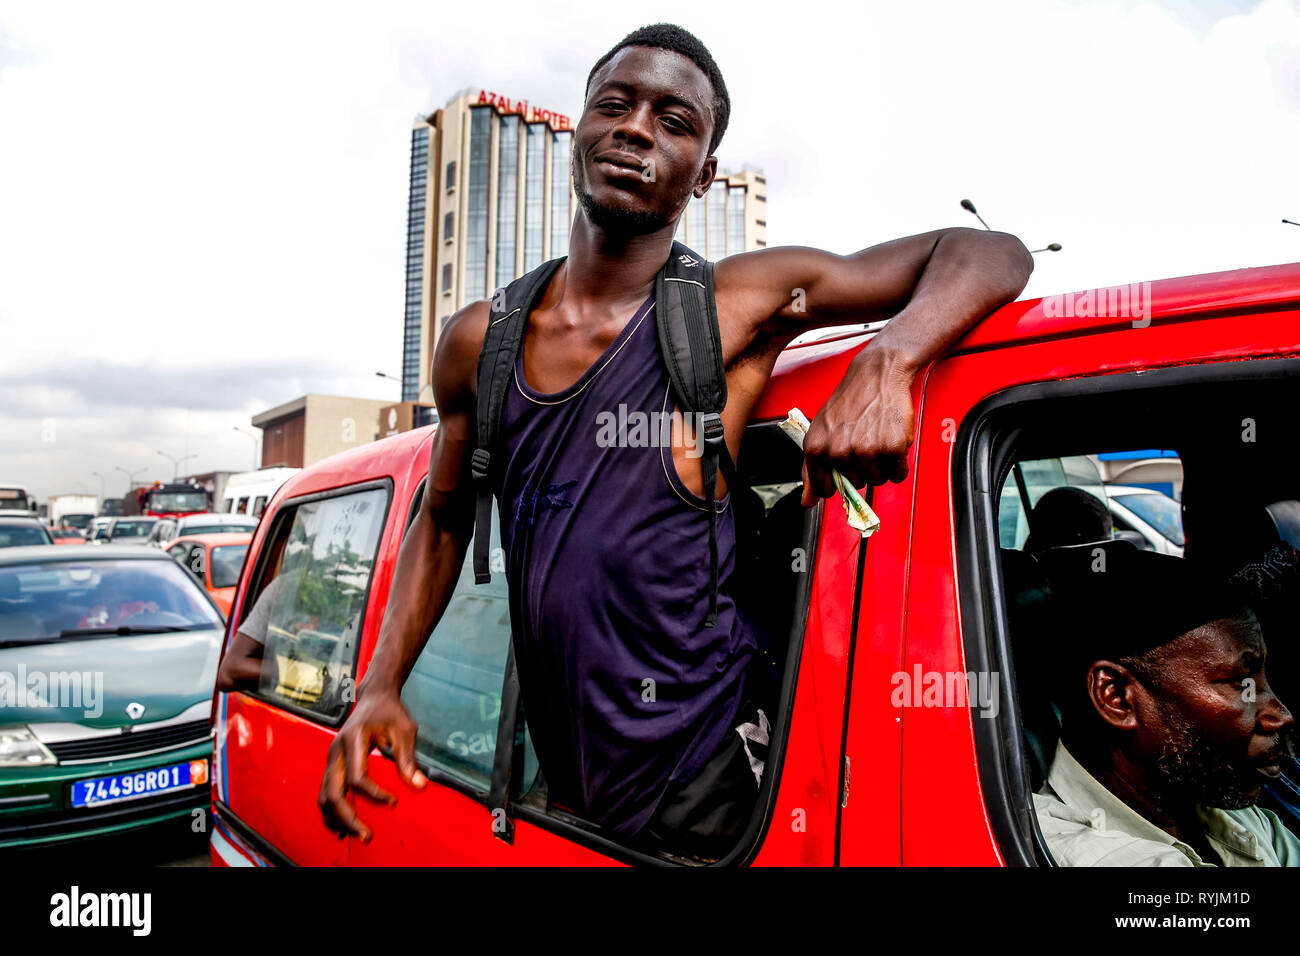 Public transport fare collector in Abidjan, Ivory Coast - Stock Image